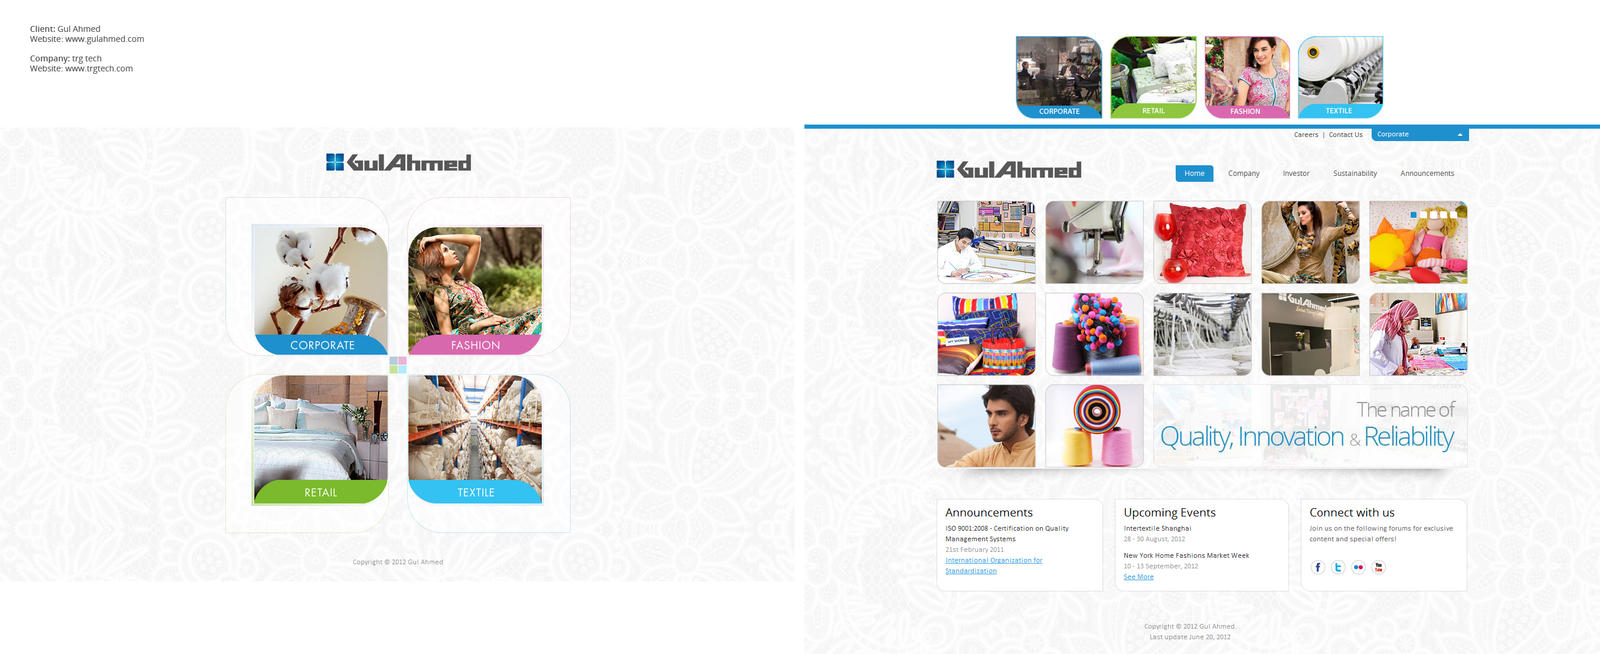 Gul Ahmed interface Design / development by salmanlp